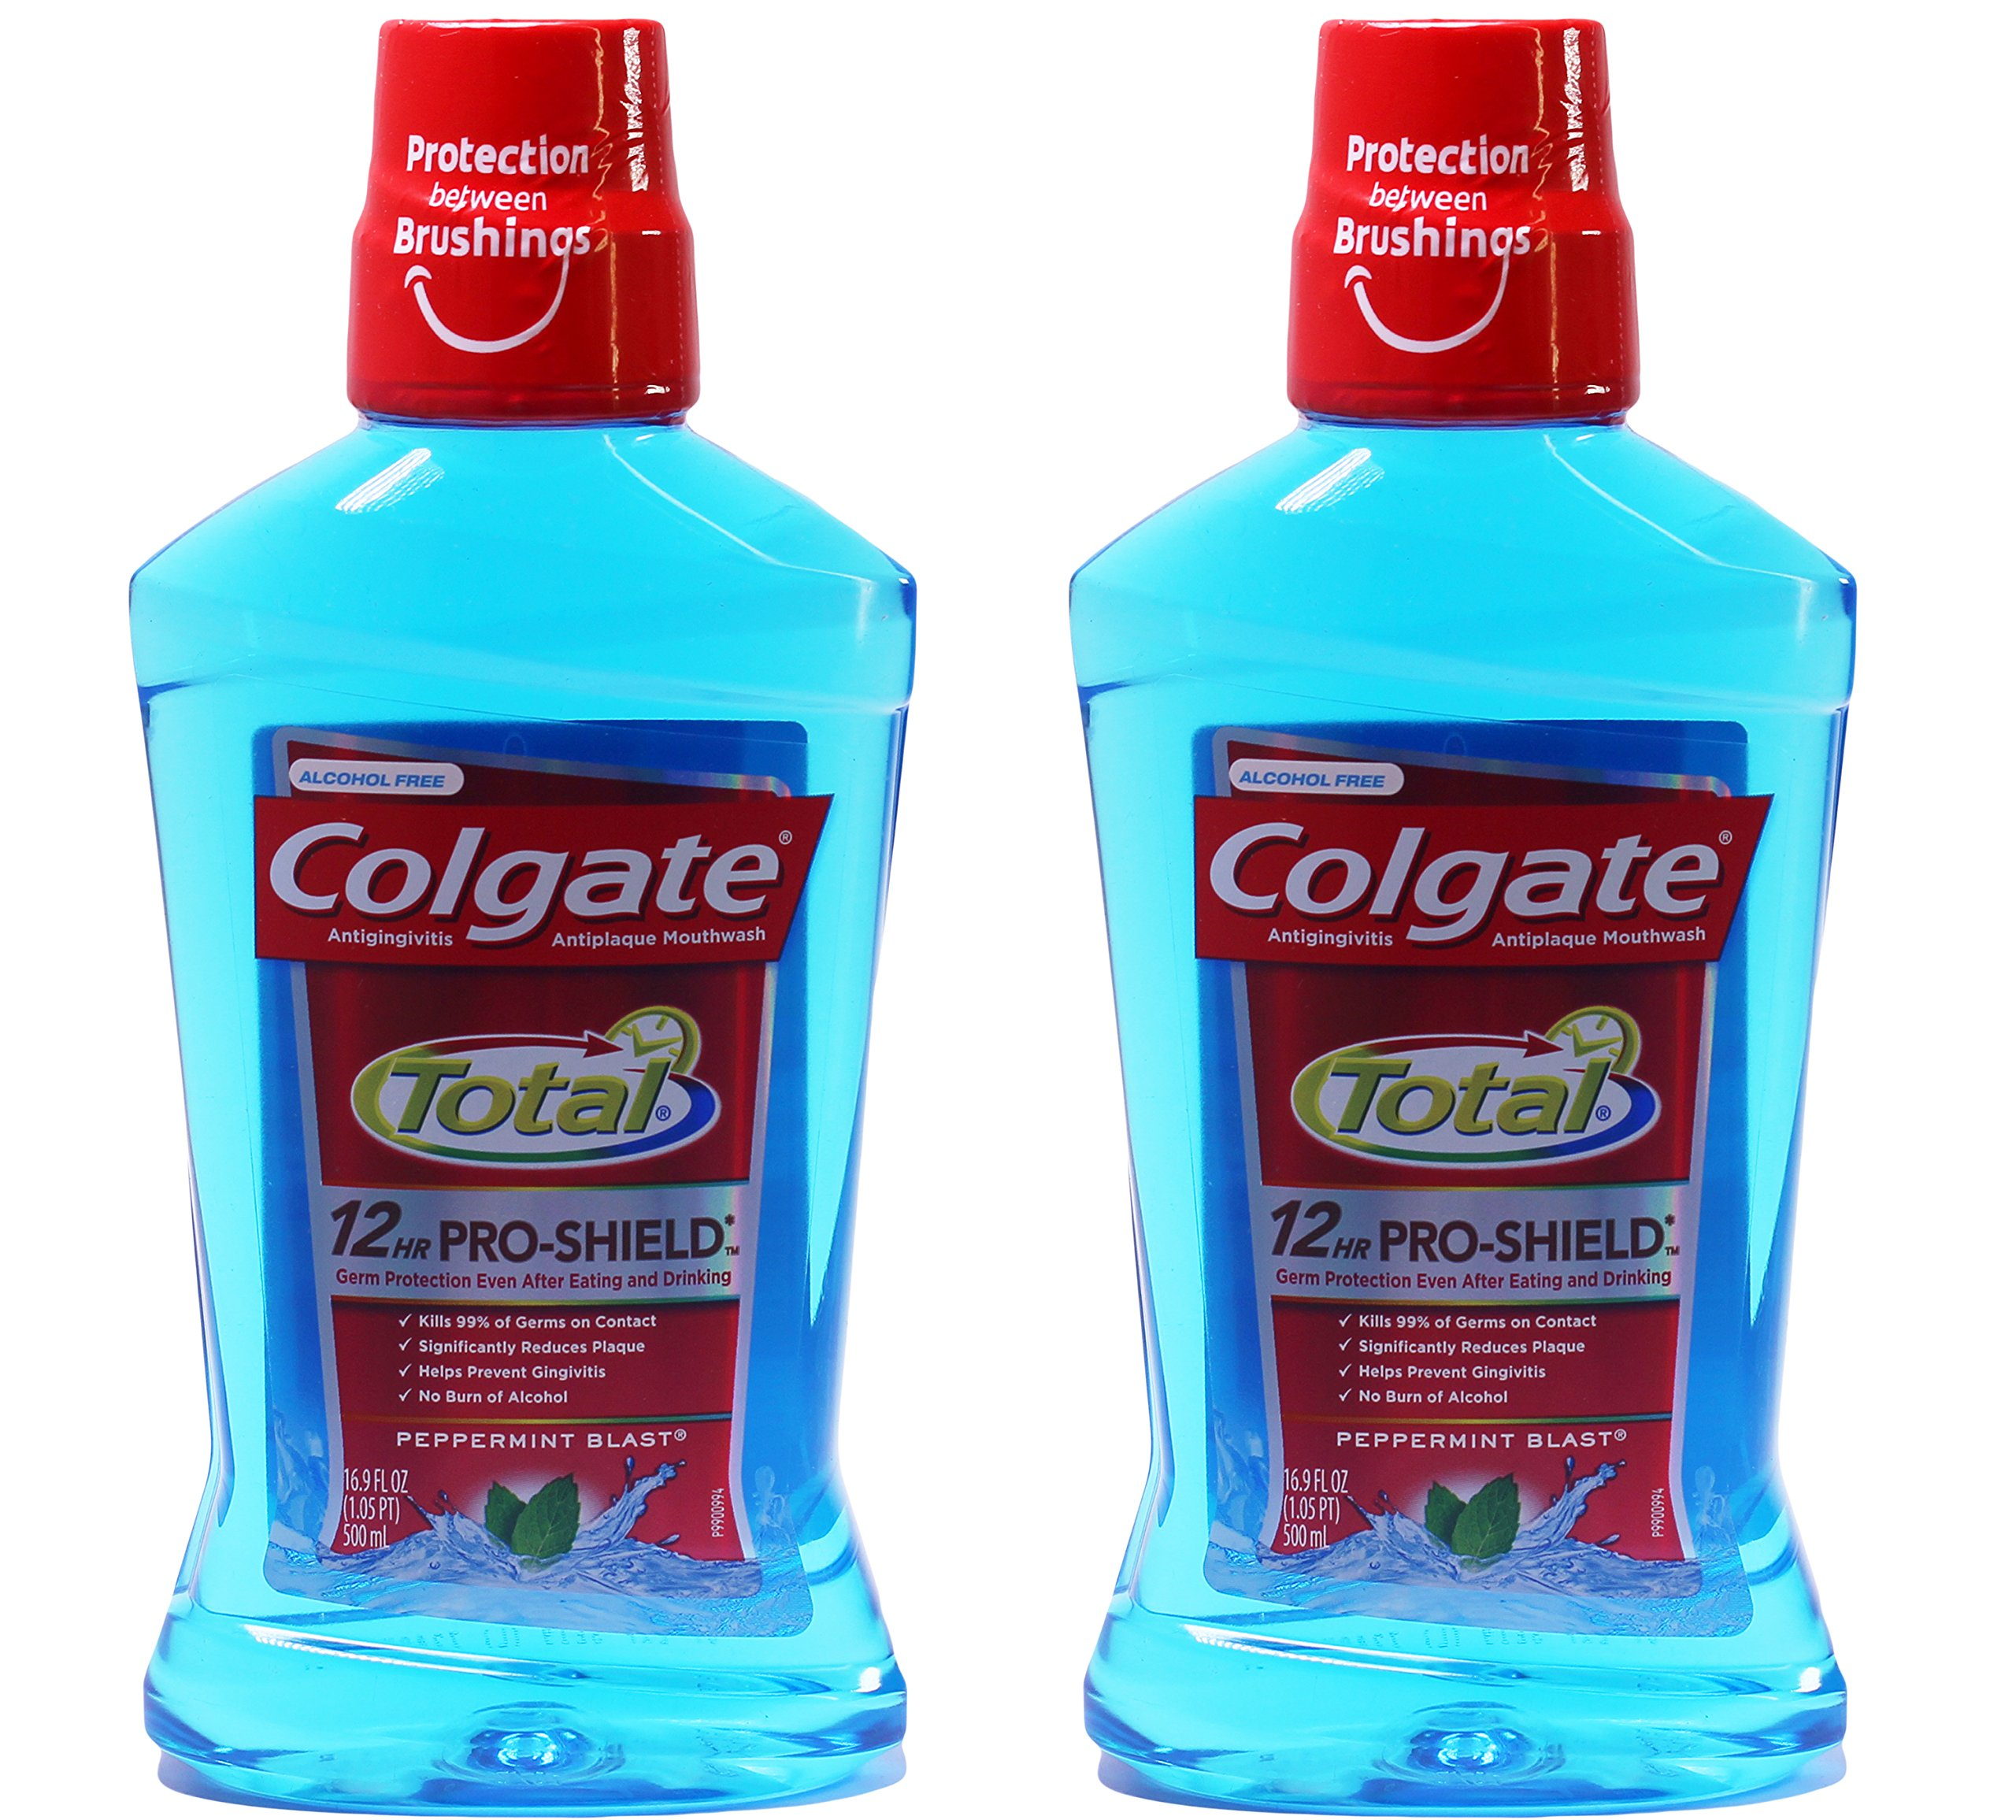 Colgate Total Advanced Pro-Shield Mouthwash, Peppermint Blast, 16.9 Ounce (Pack of 2)